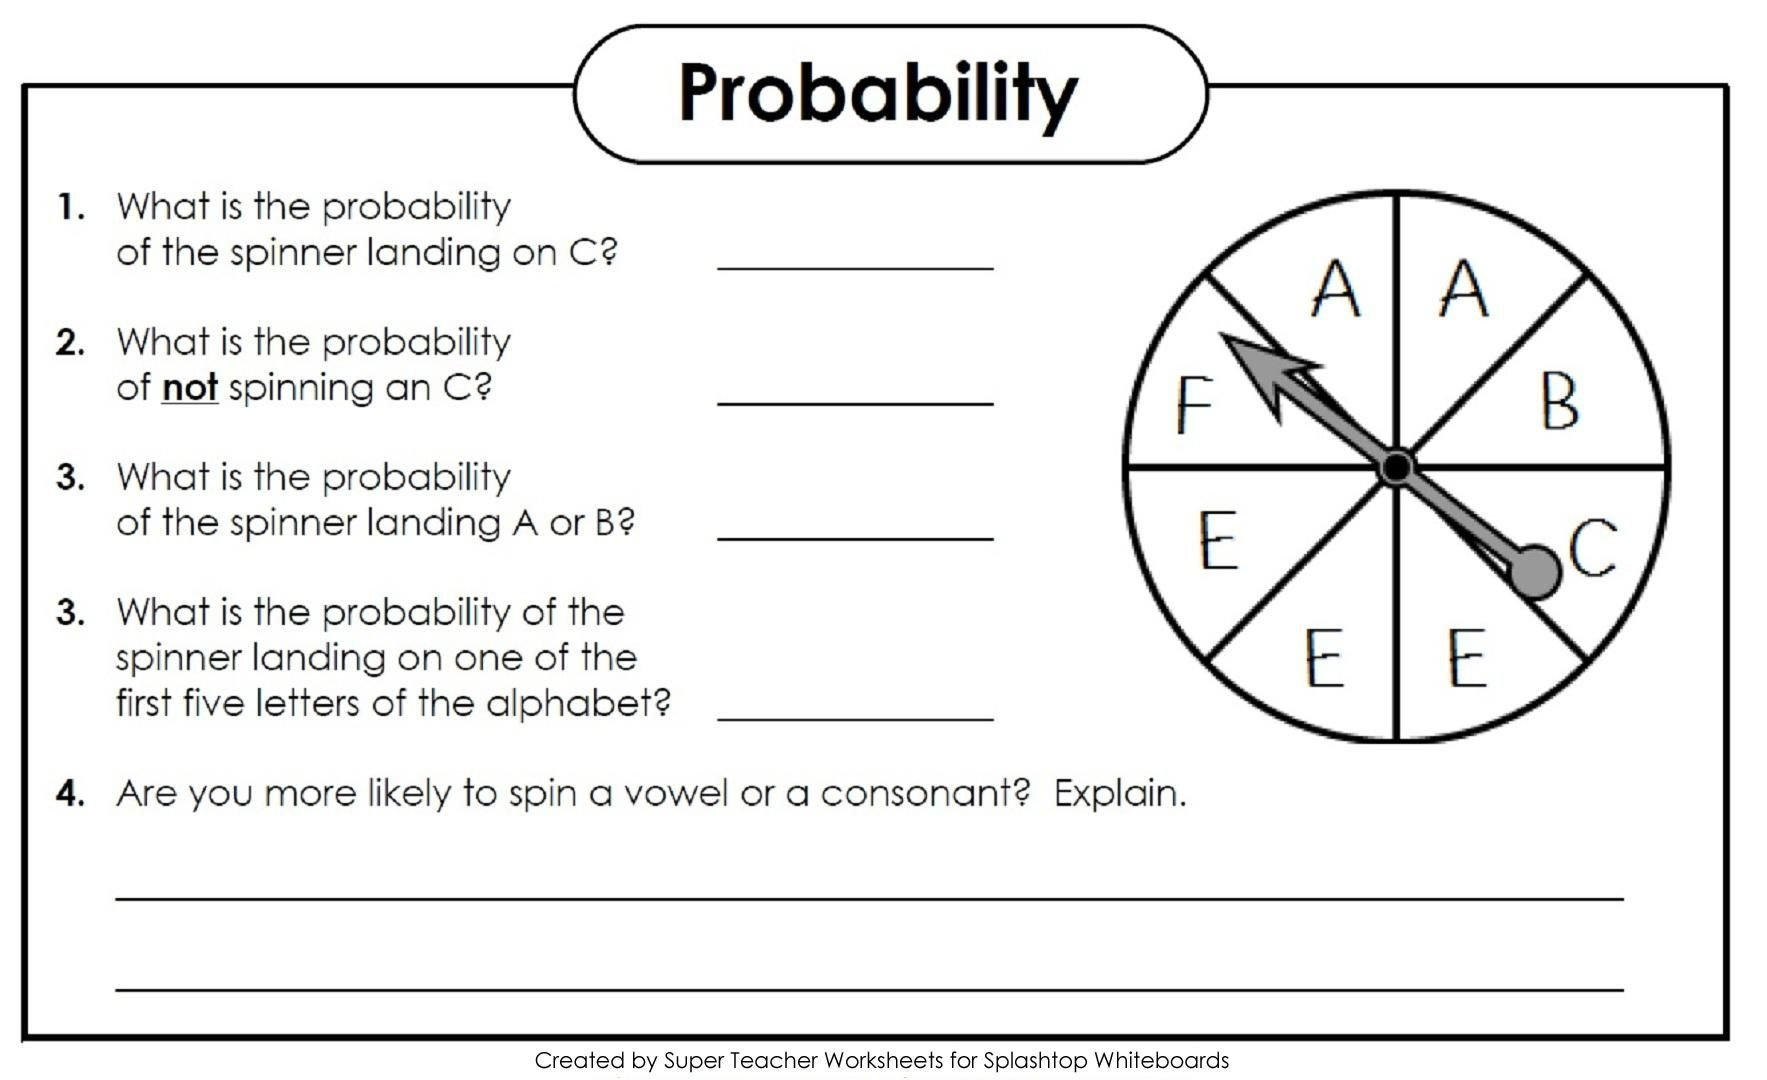 Simple Probability Worksheets Pdf 15 High School Geometrie Arbeitsblätter Pdf